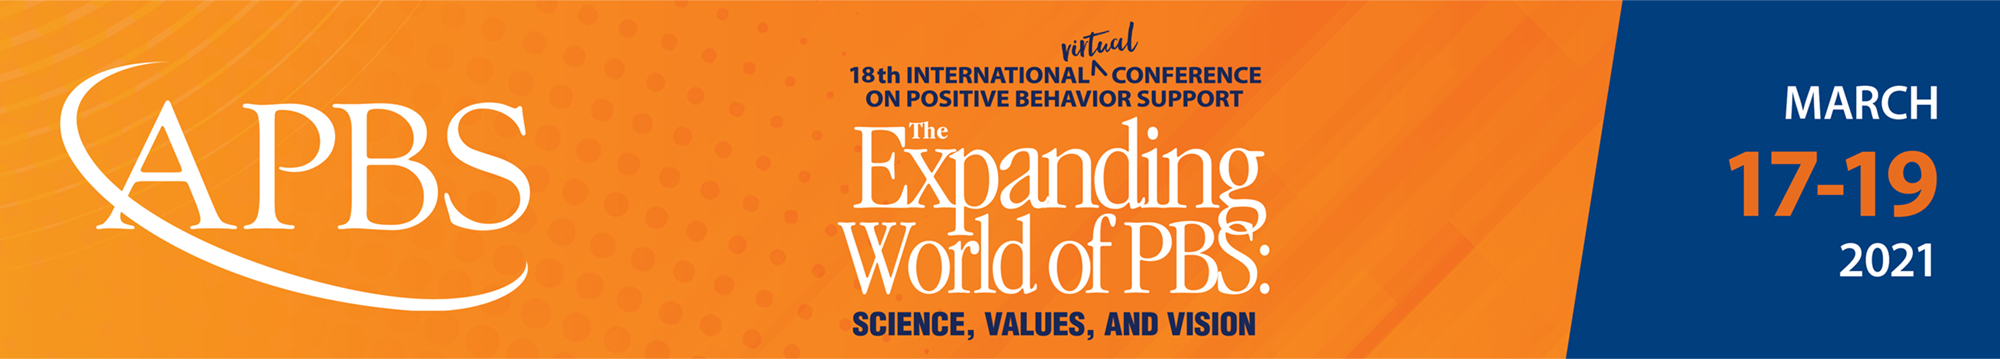 18th International Virtual Conference on Positive Behavior Support. The Expanding World of PBS: Science, Values, and Vision. March 17-19, 2021